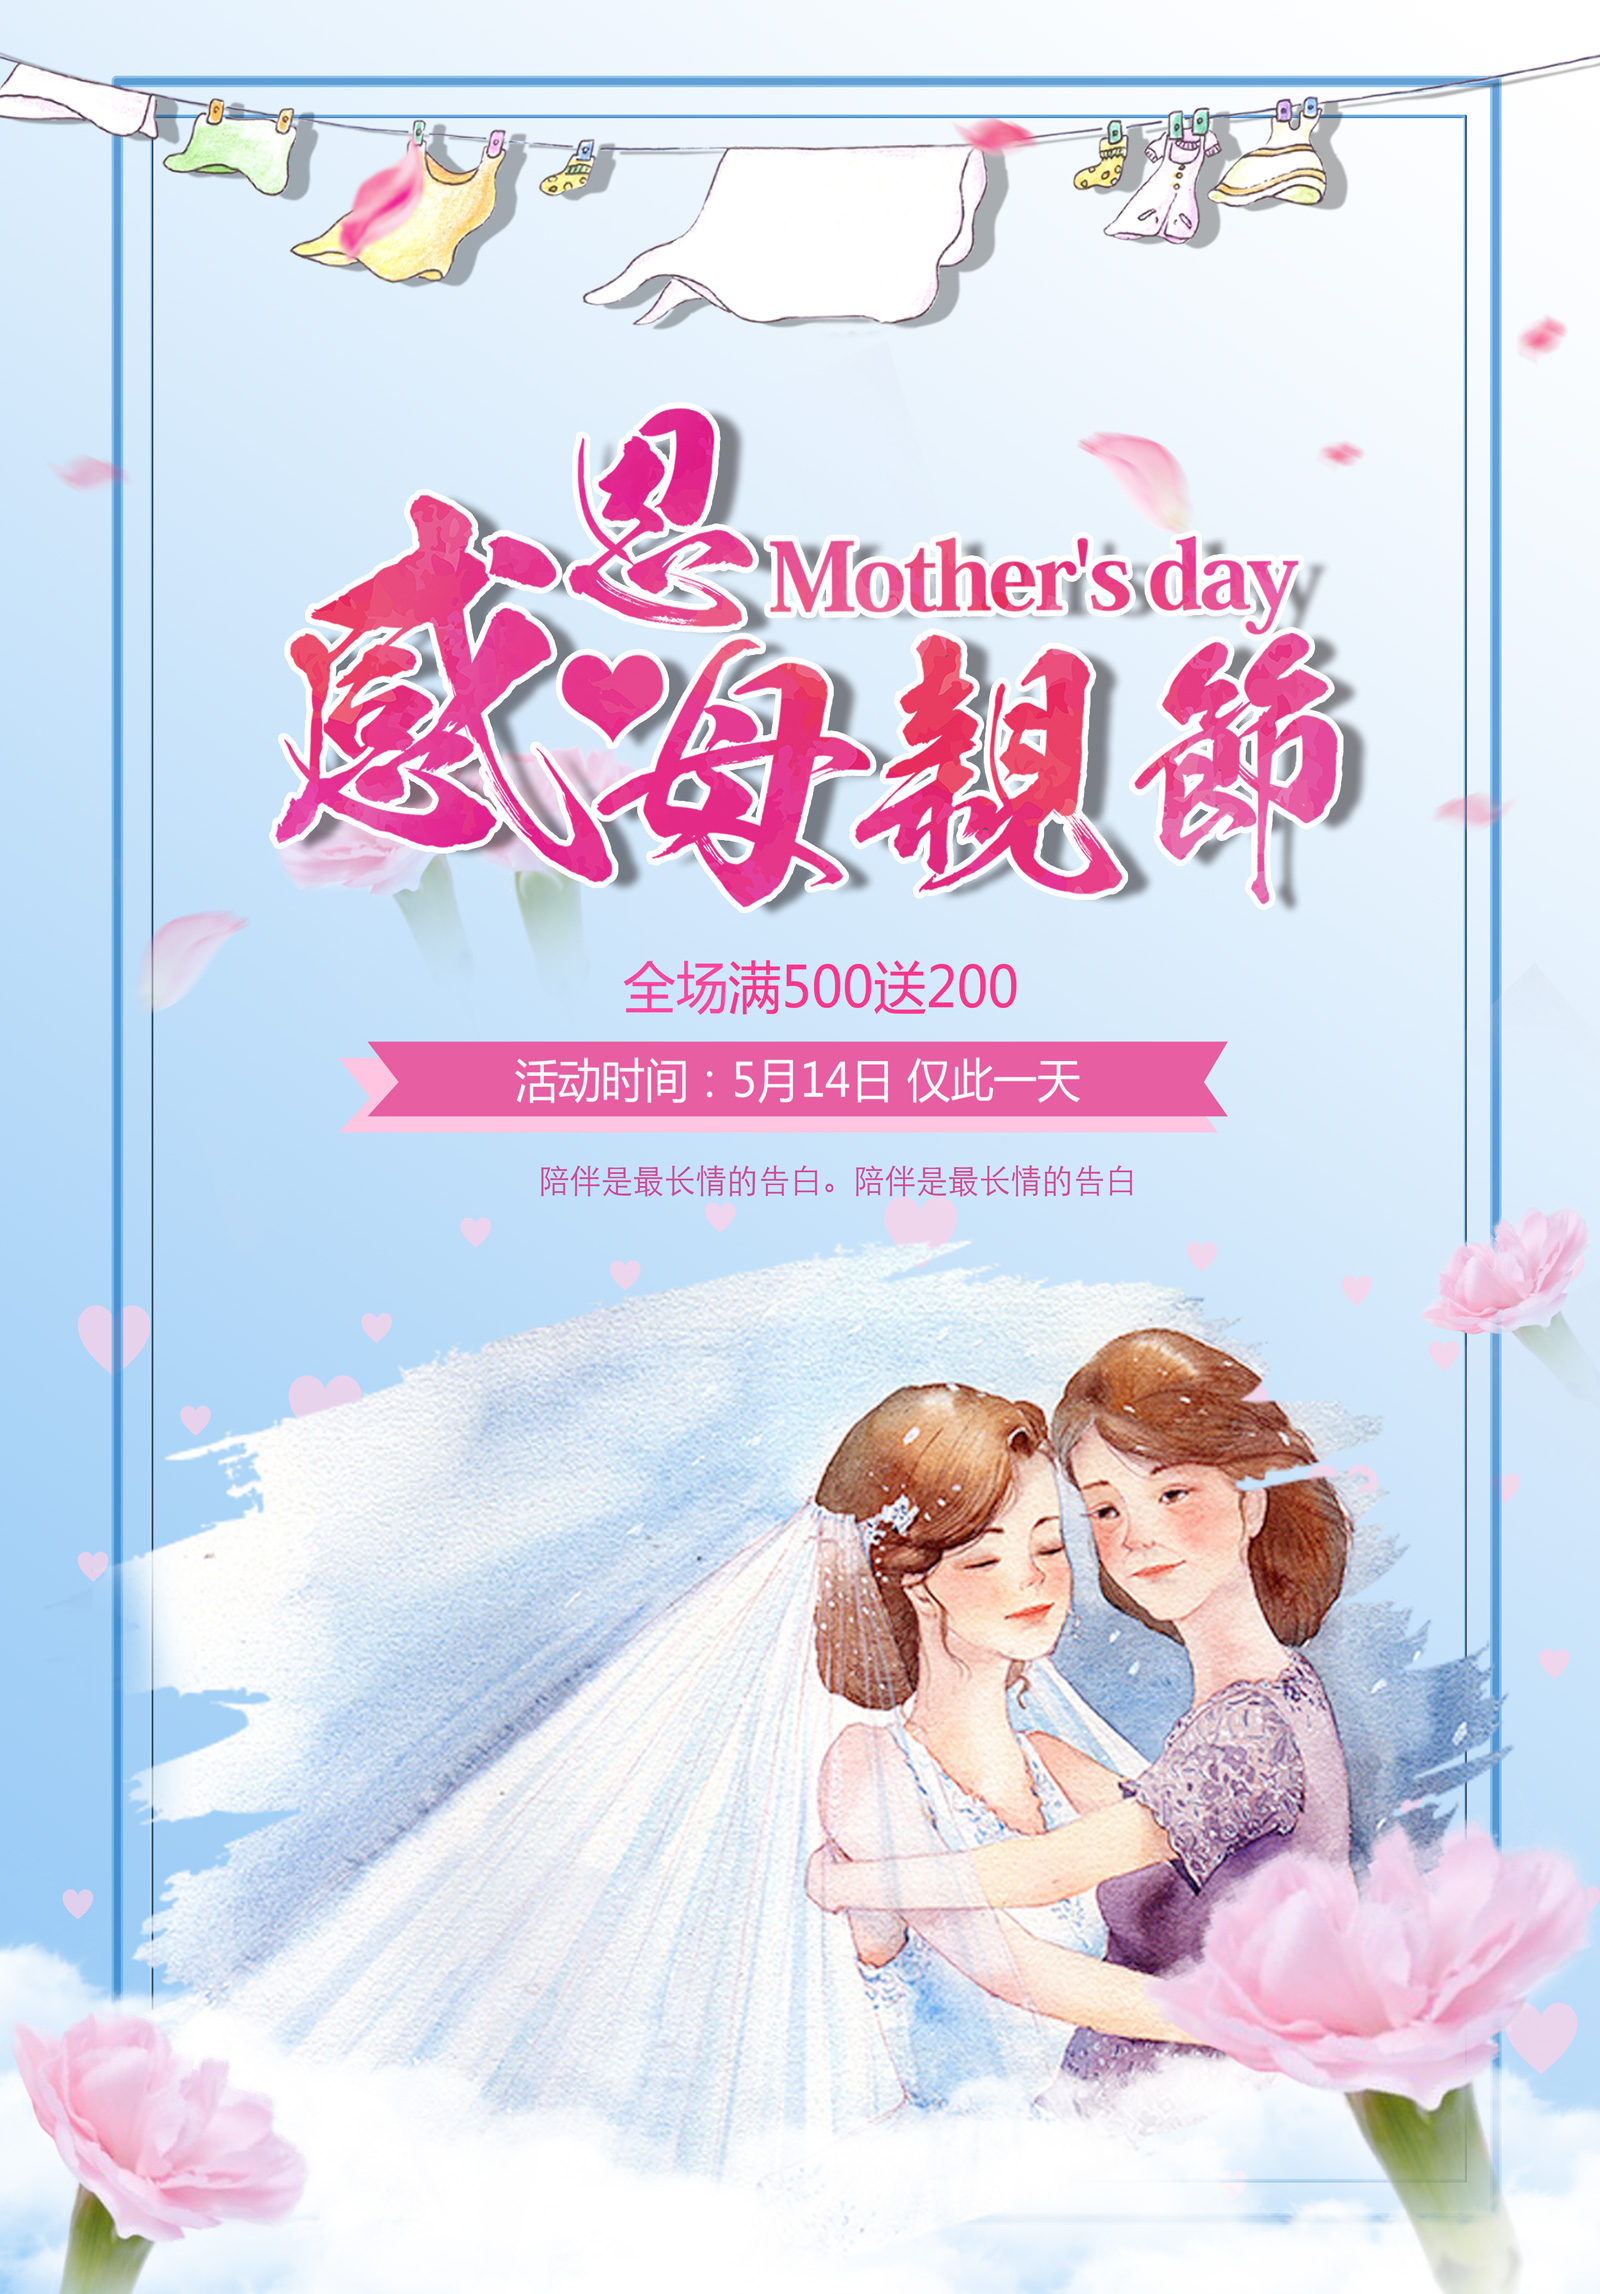 Thanksgiving parents Mother 's Day discount event poster  China PSD File Free Download